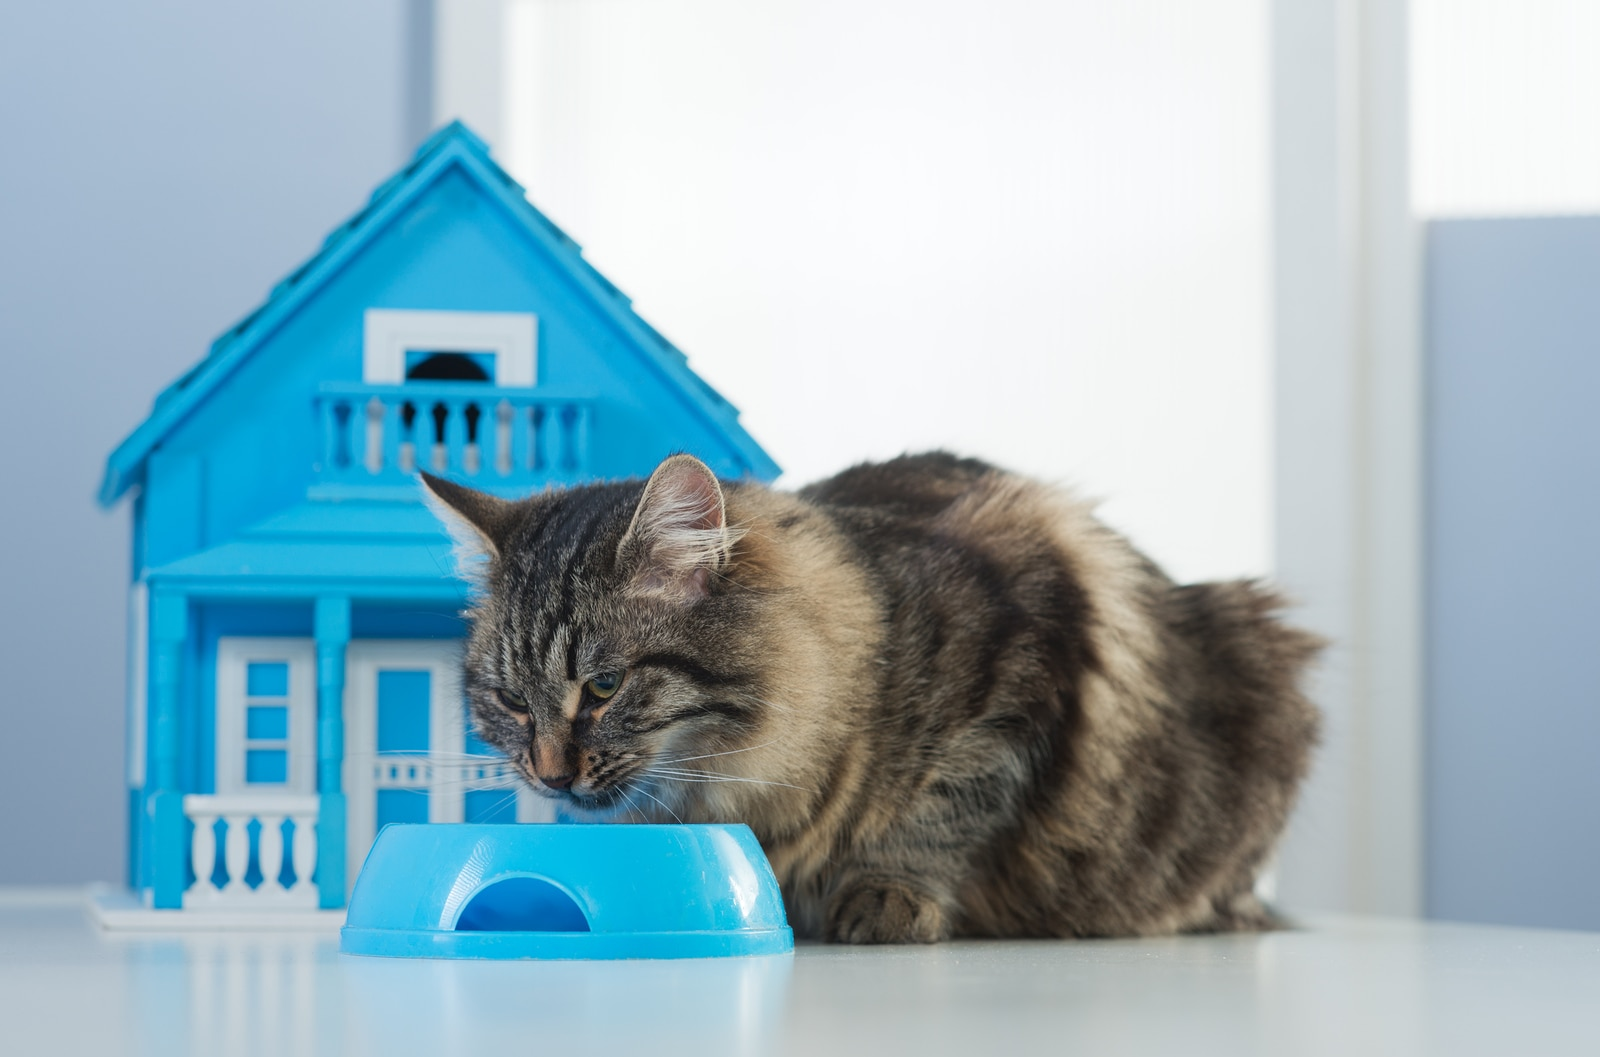 Cat eating in a bowl in front of a toy model house.